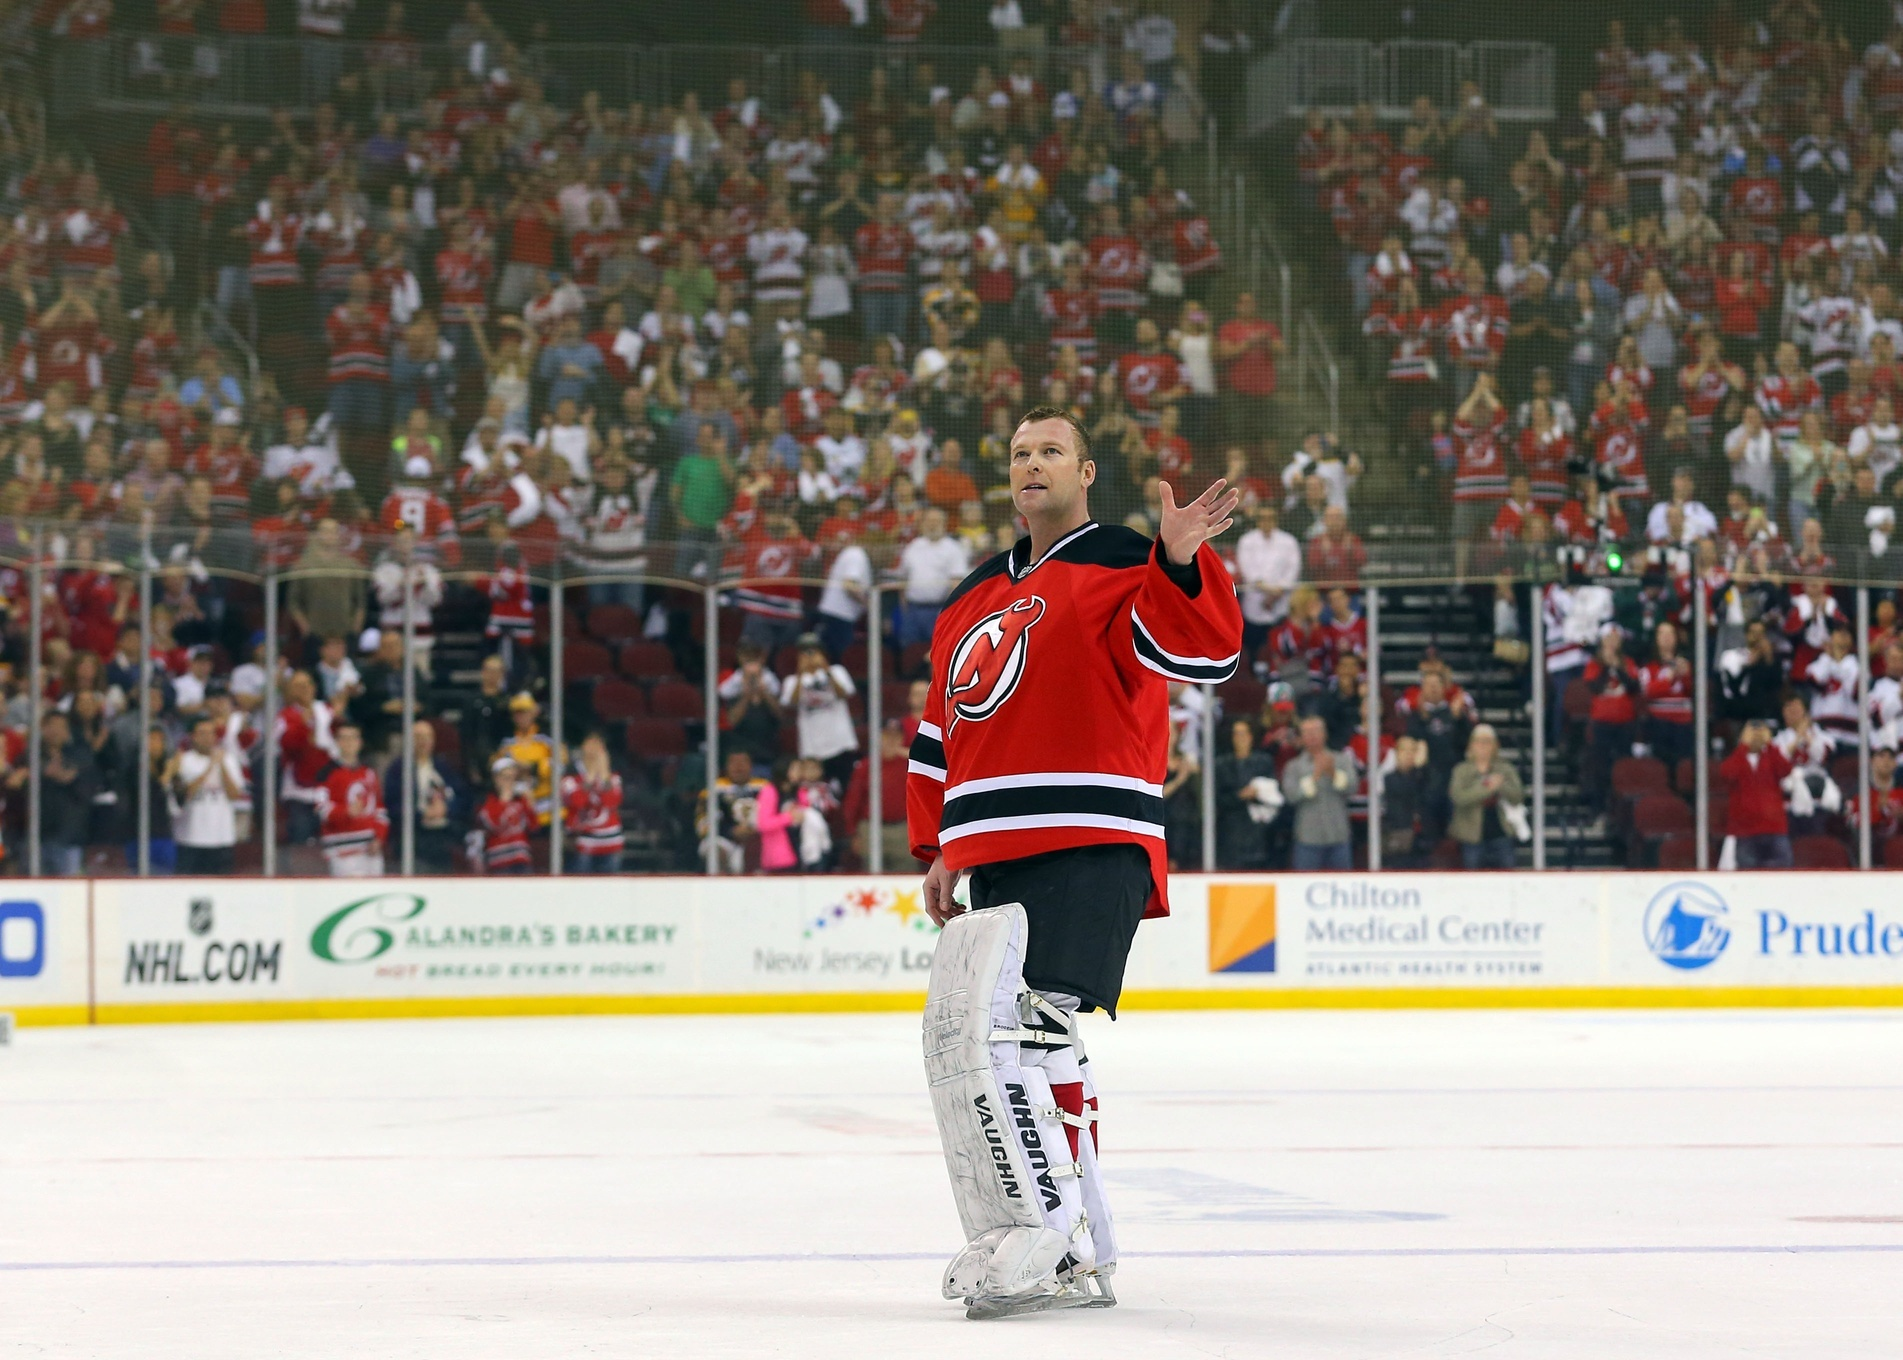 Martin Brodeur Is Still Waiting By The Phone Vice